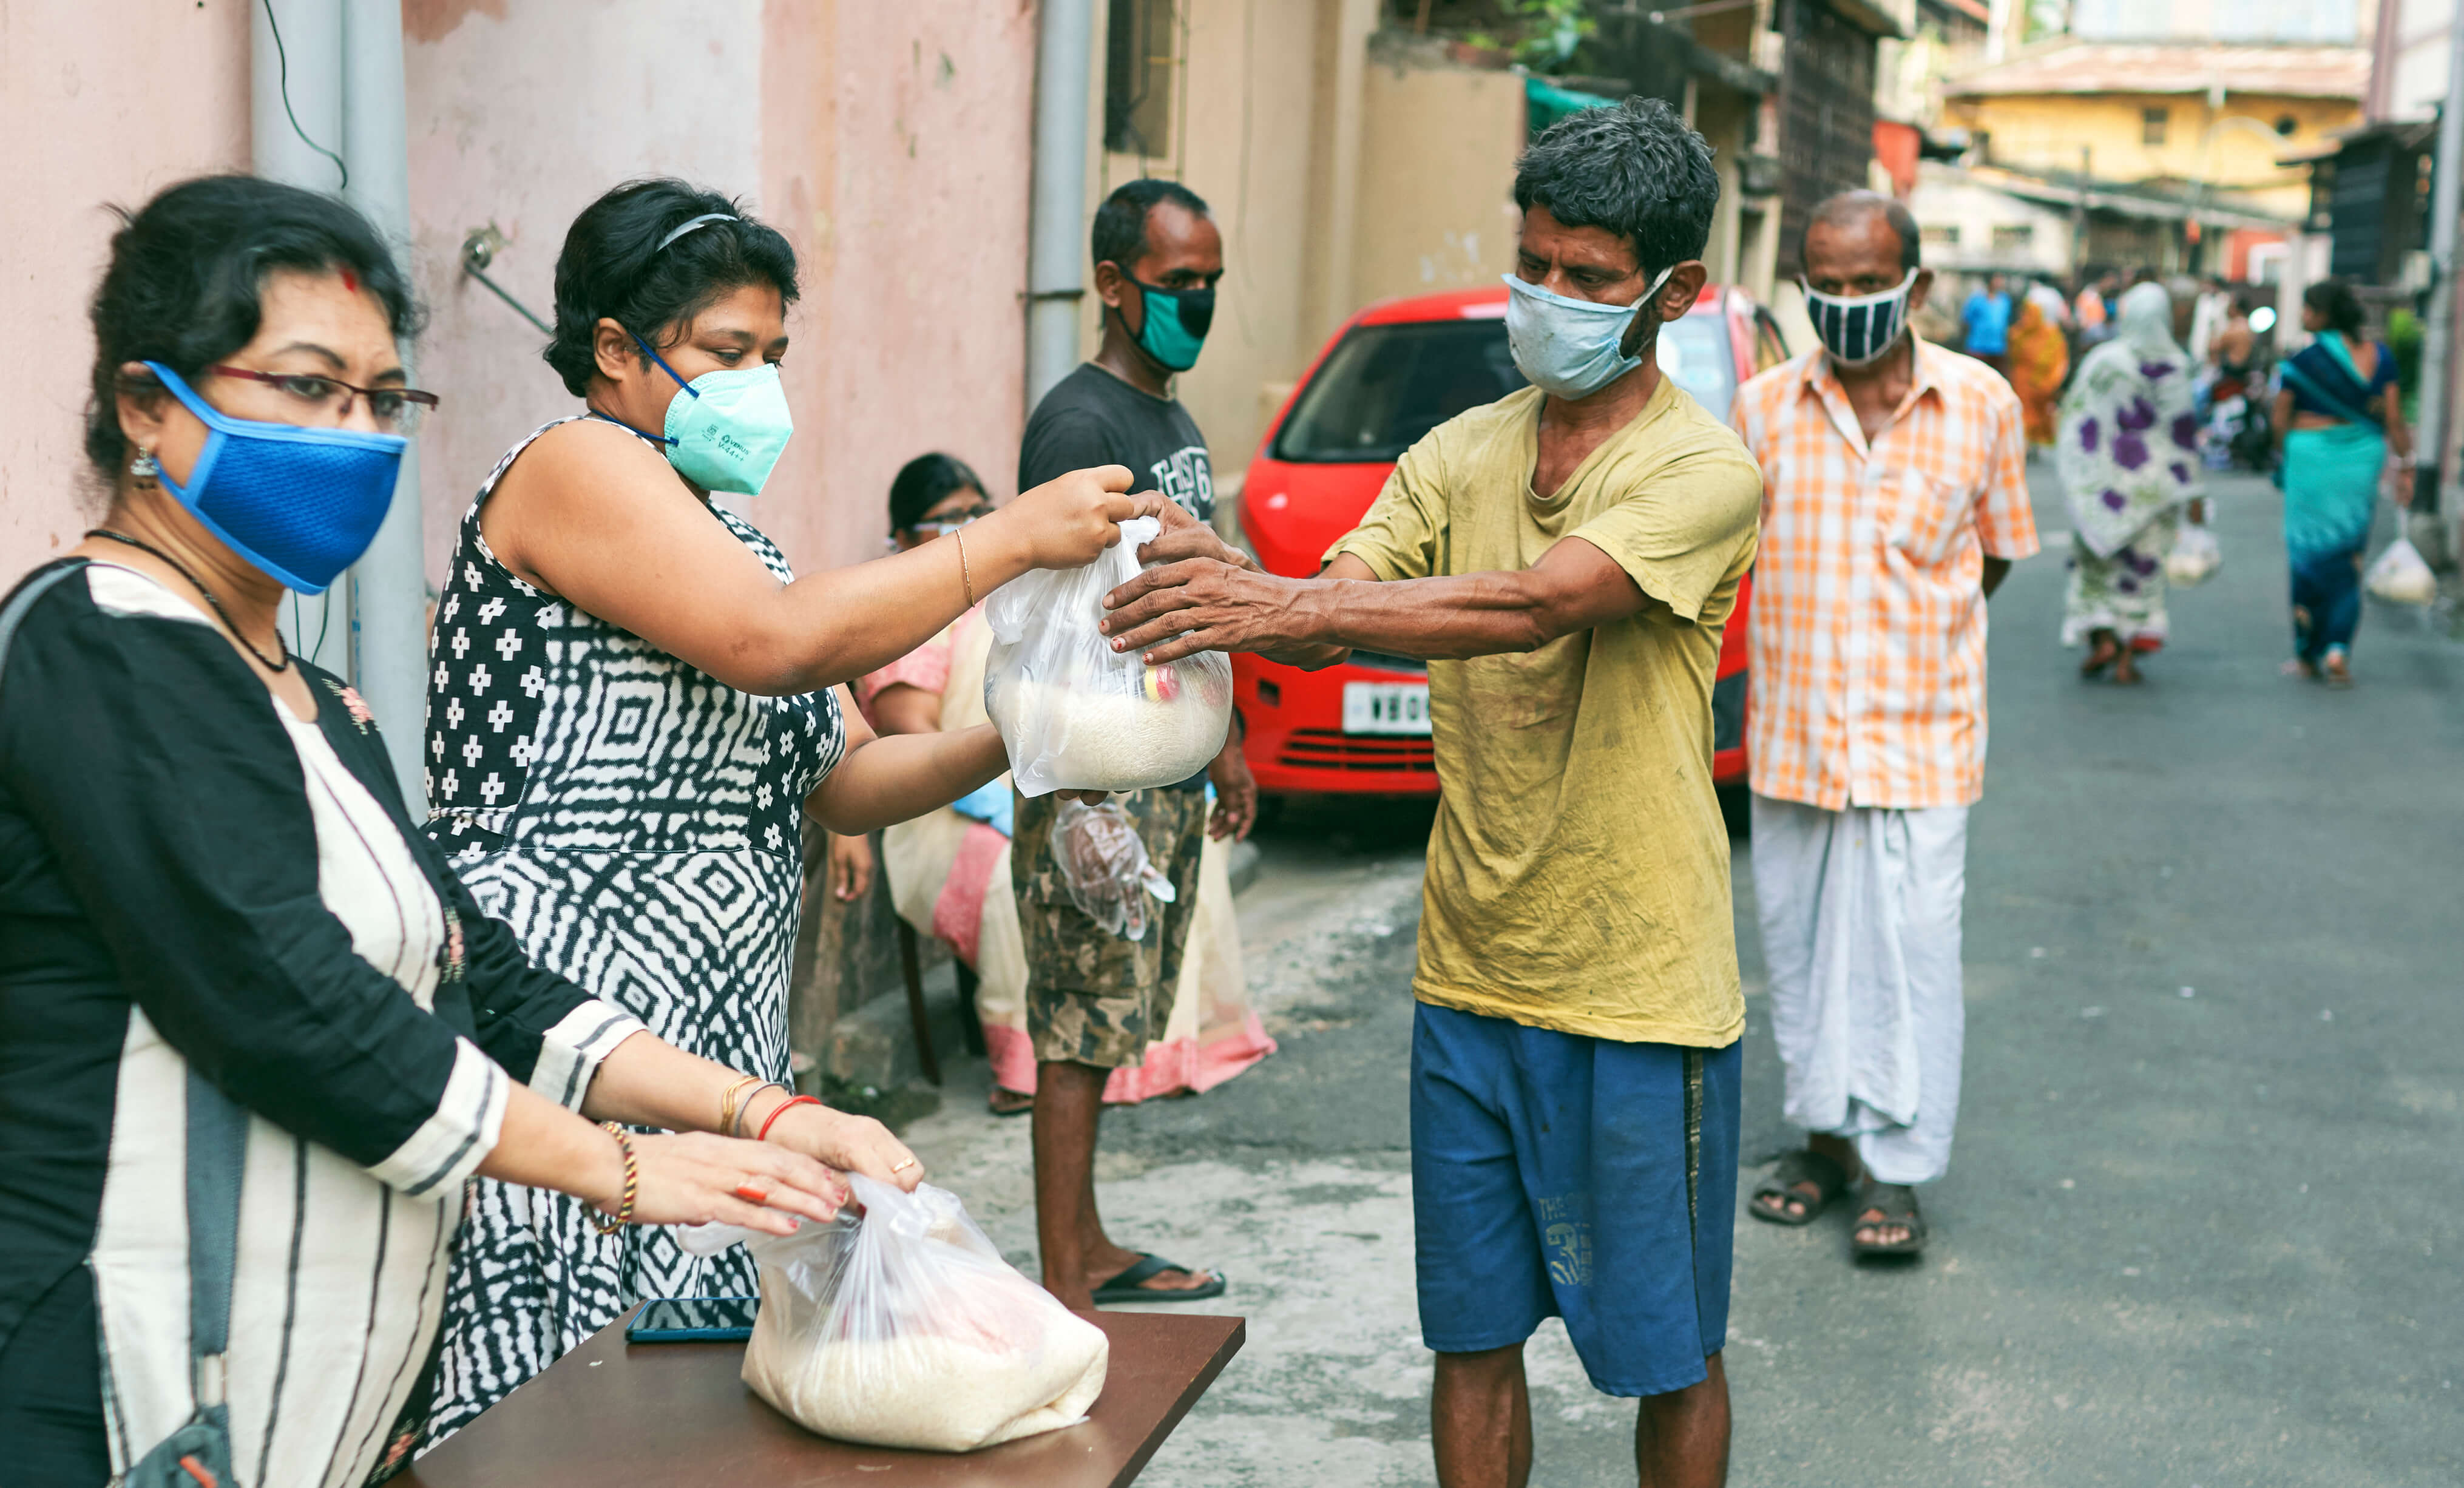 Civic volunteers responding to COVID-19 hand out groceries in Kolkata, India. Photo by Suprabhat Dutta.